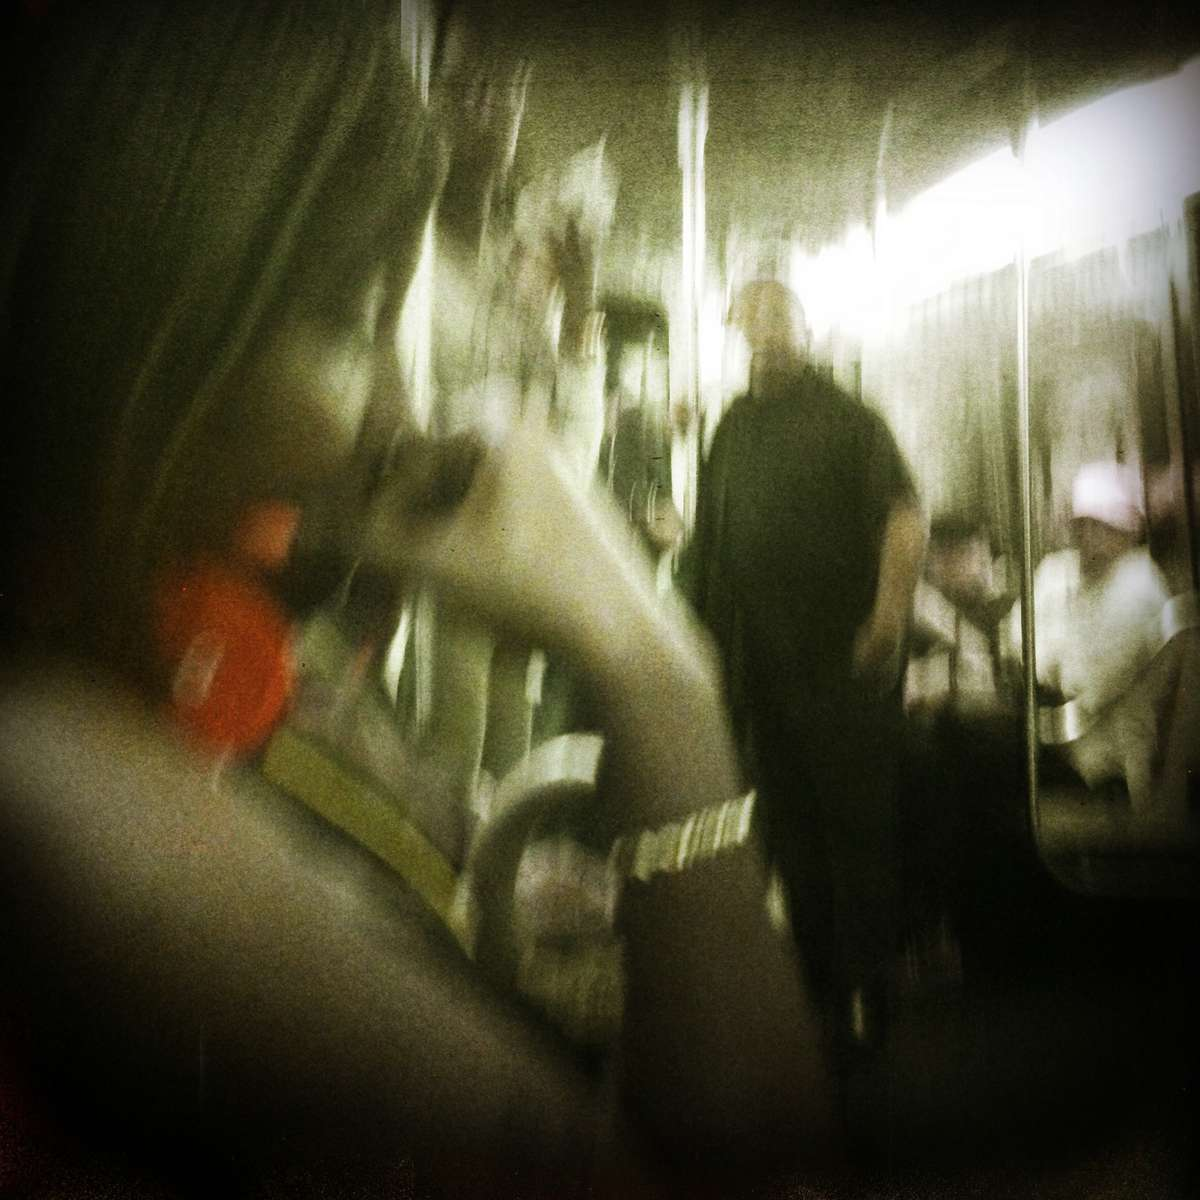 New York subway, as hot summer continues and as I still cope with jet lag.